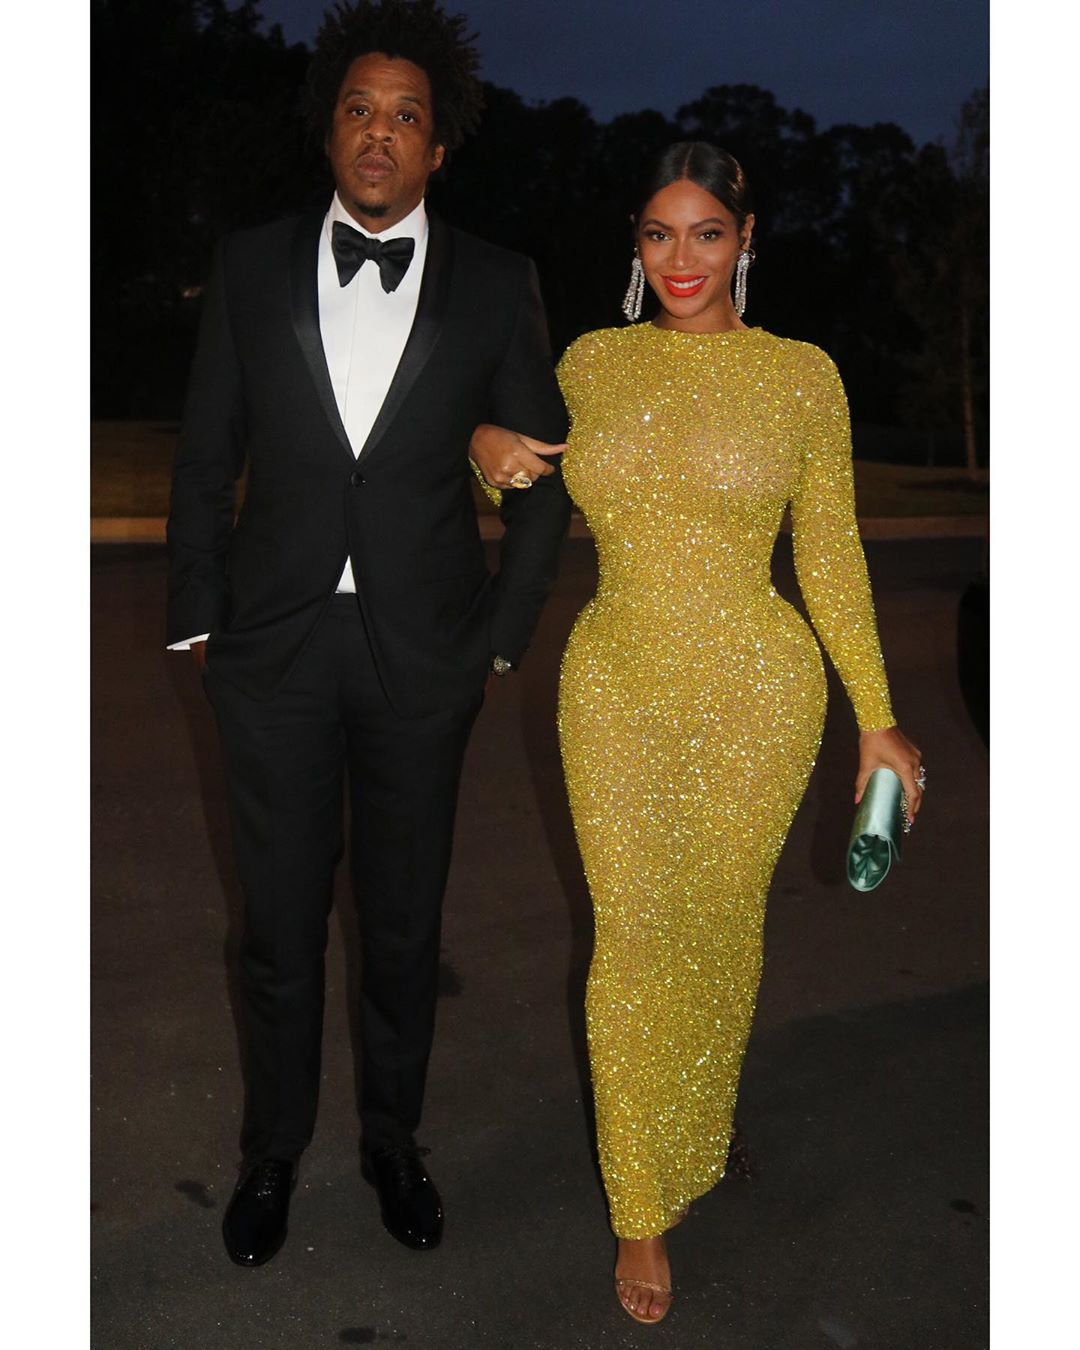 jay-z-beyonce-the-carters-tyler-perry-makes-history-with-the-opening-and-tour-of-his-250-million-studios